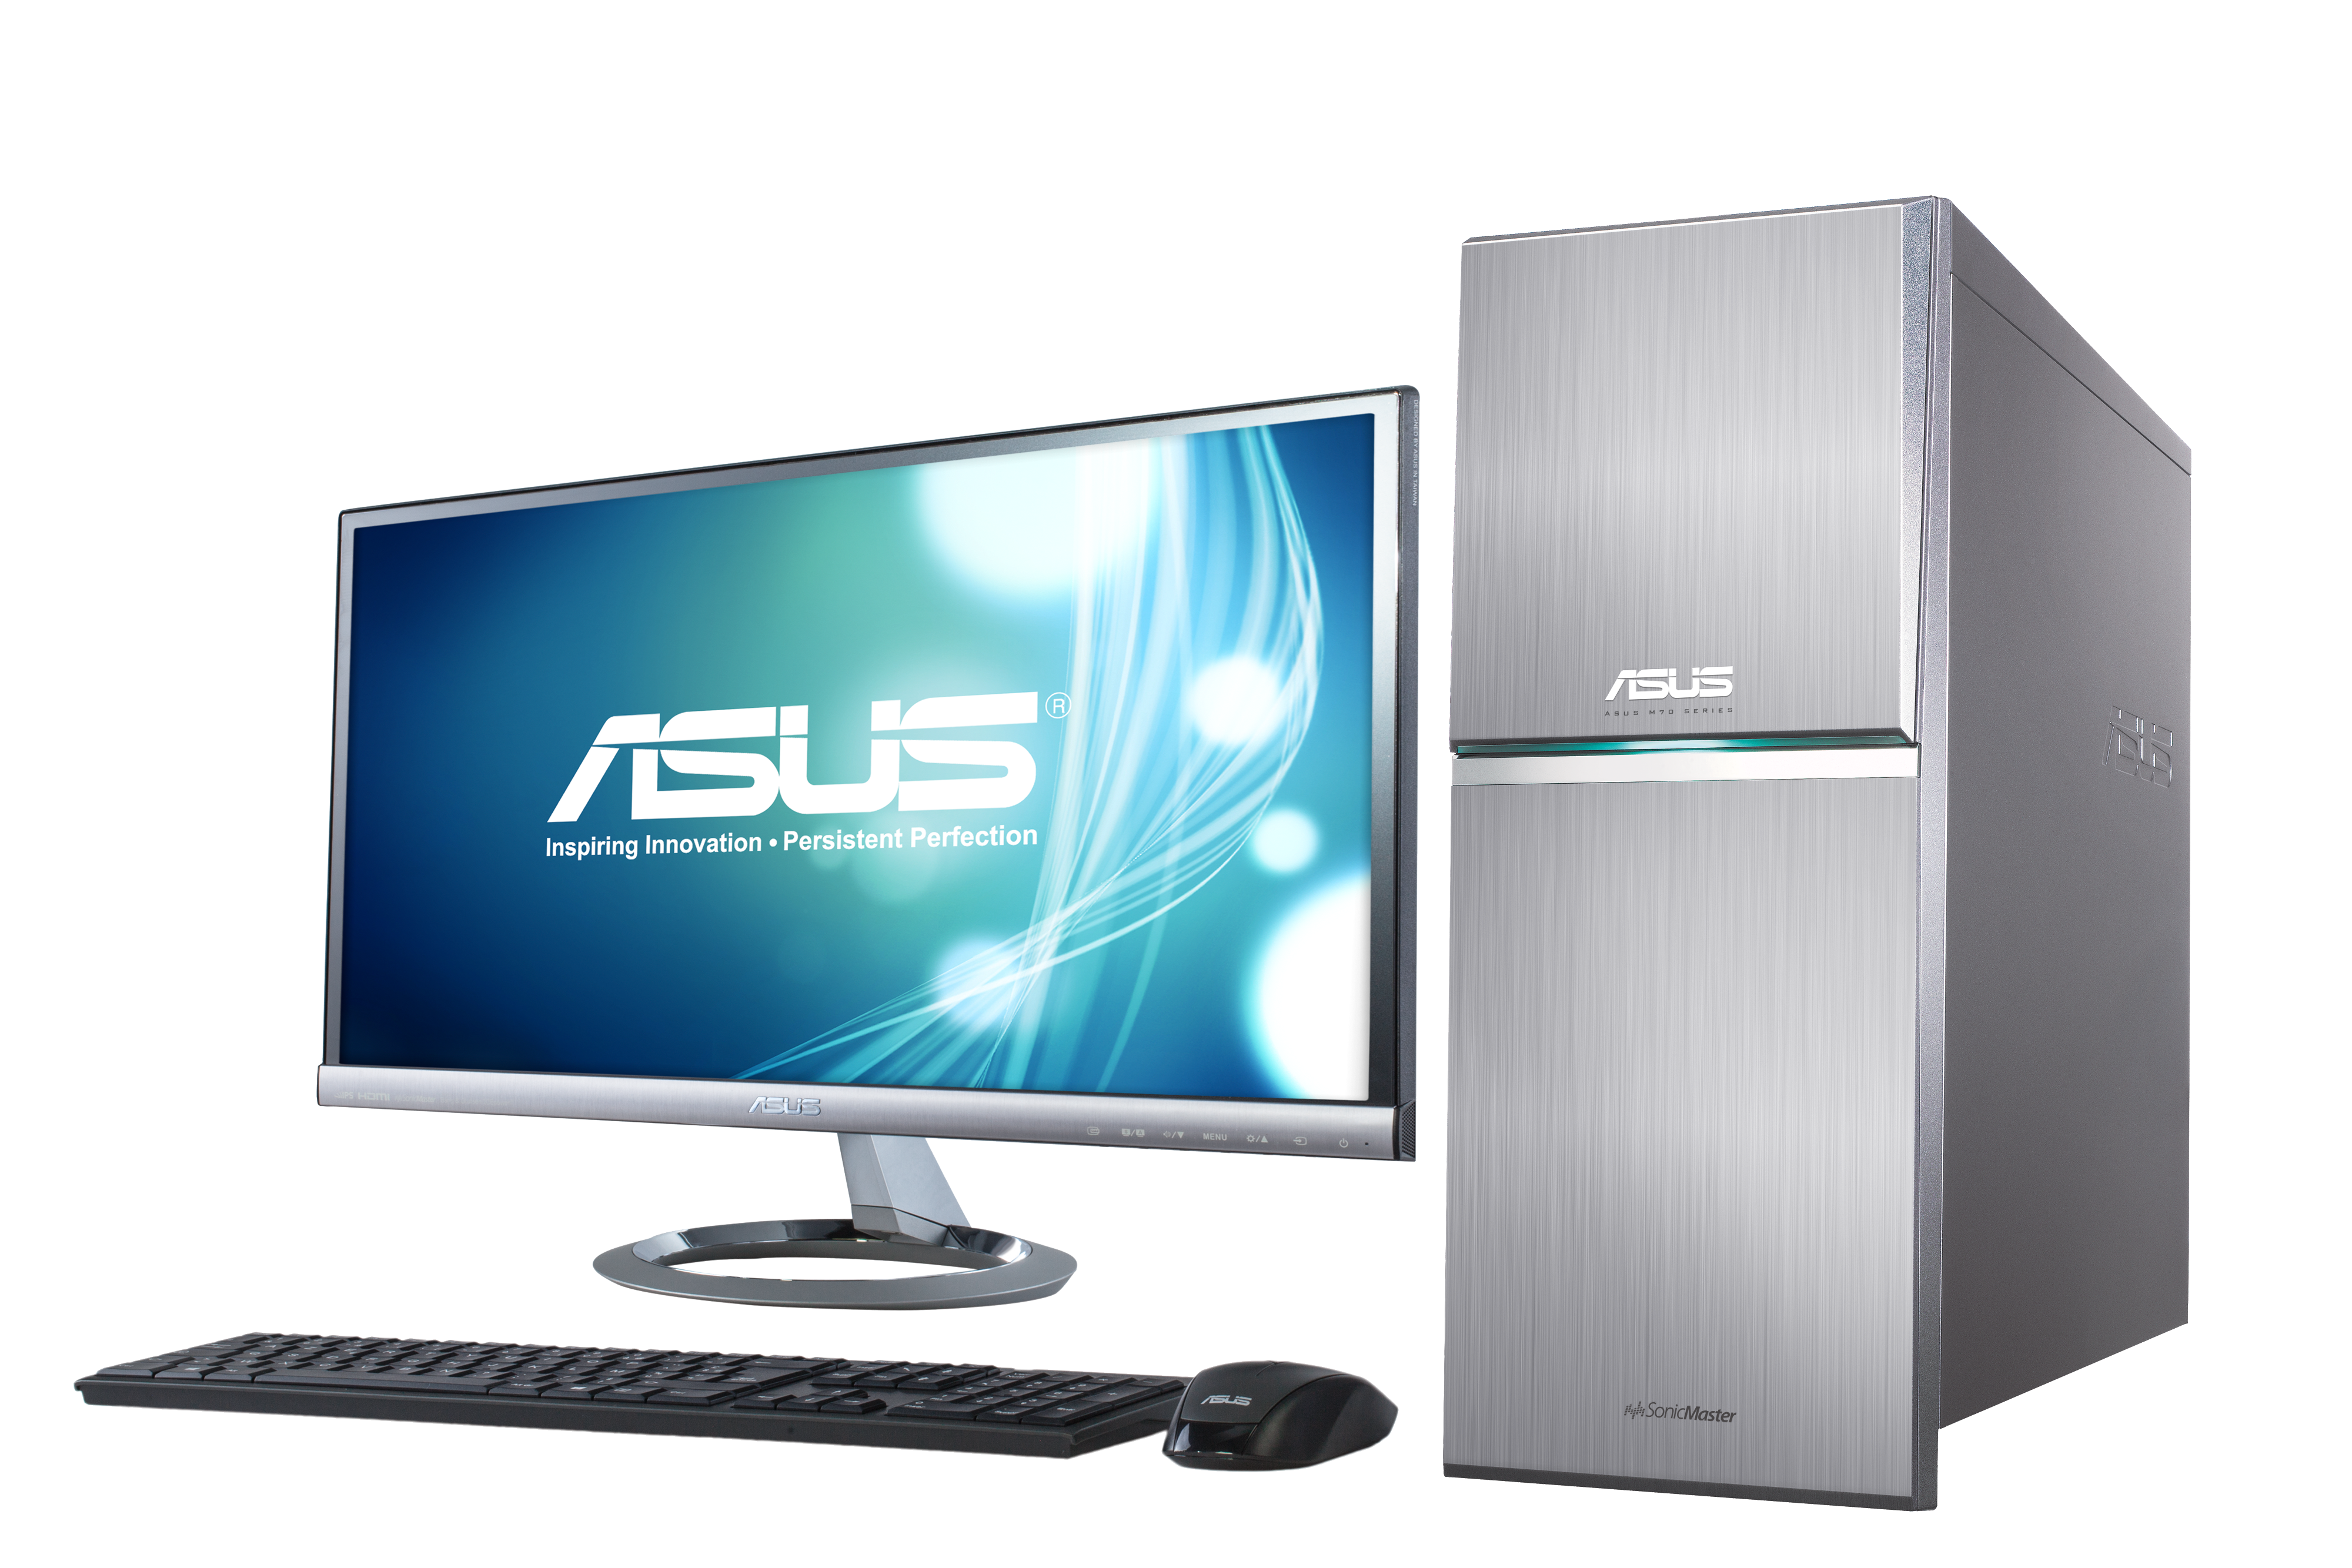 Asus Computer PC PNG Download image #45254